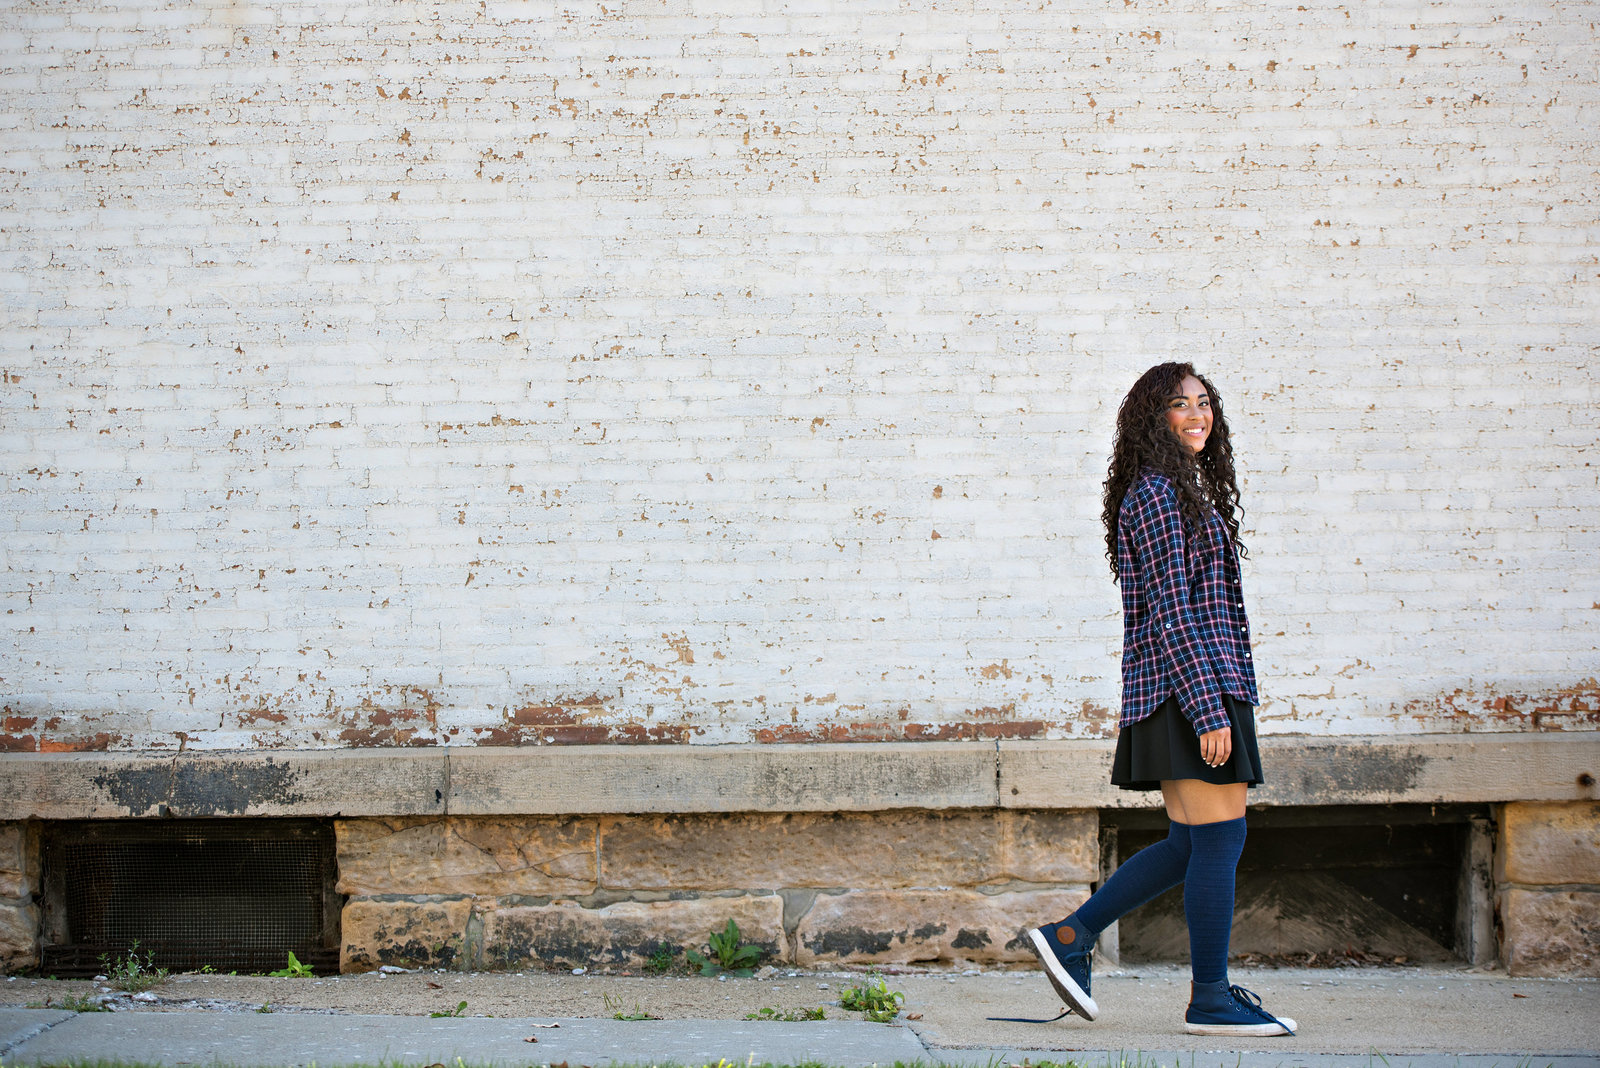 Senior Portrait of a girl walking along a bricked building.